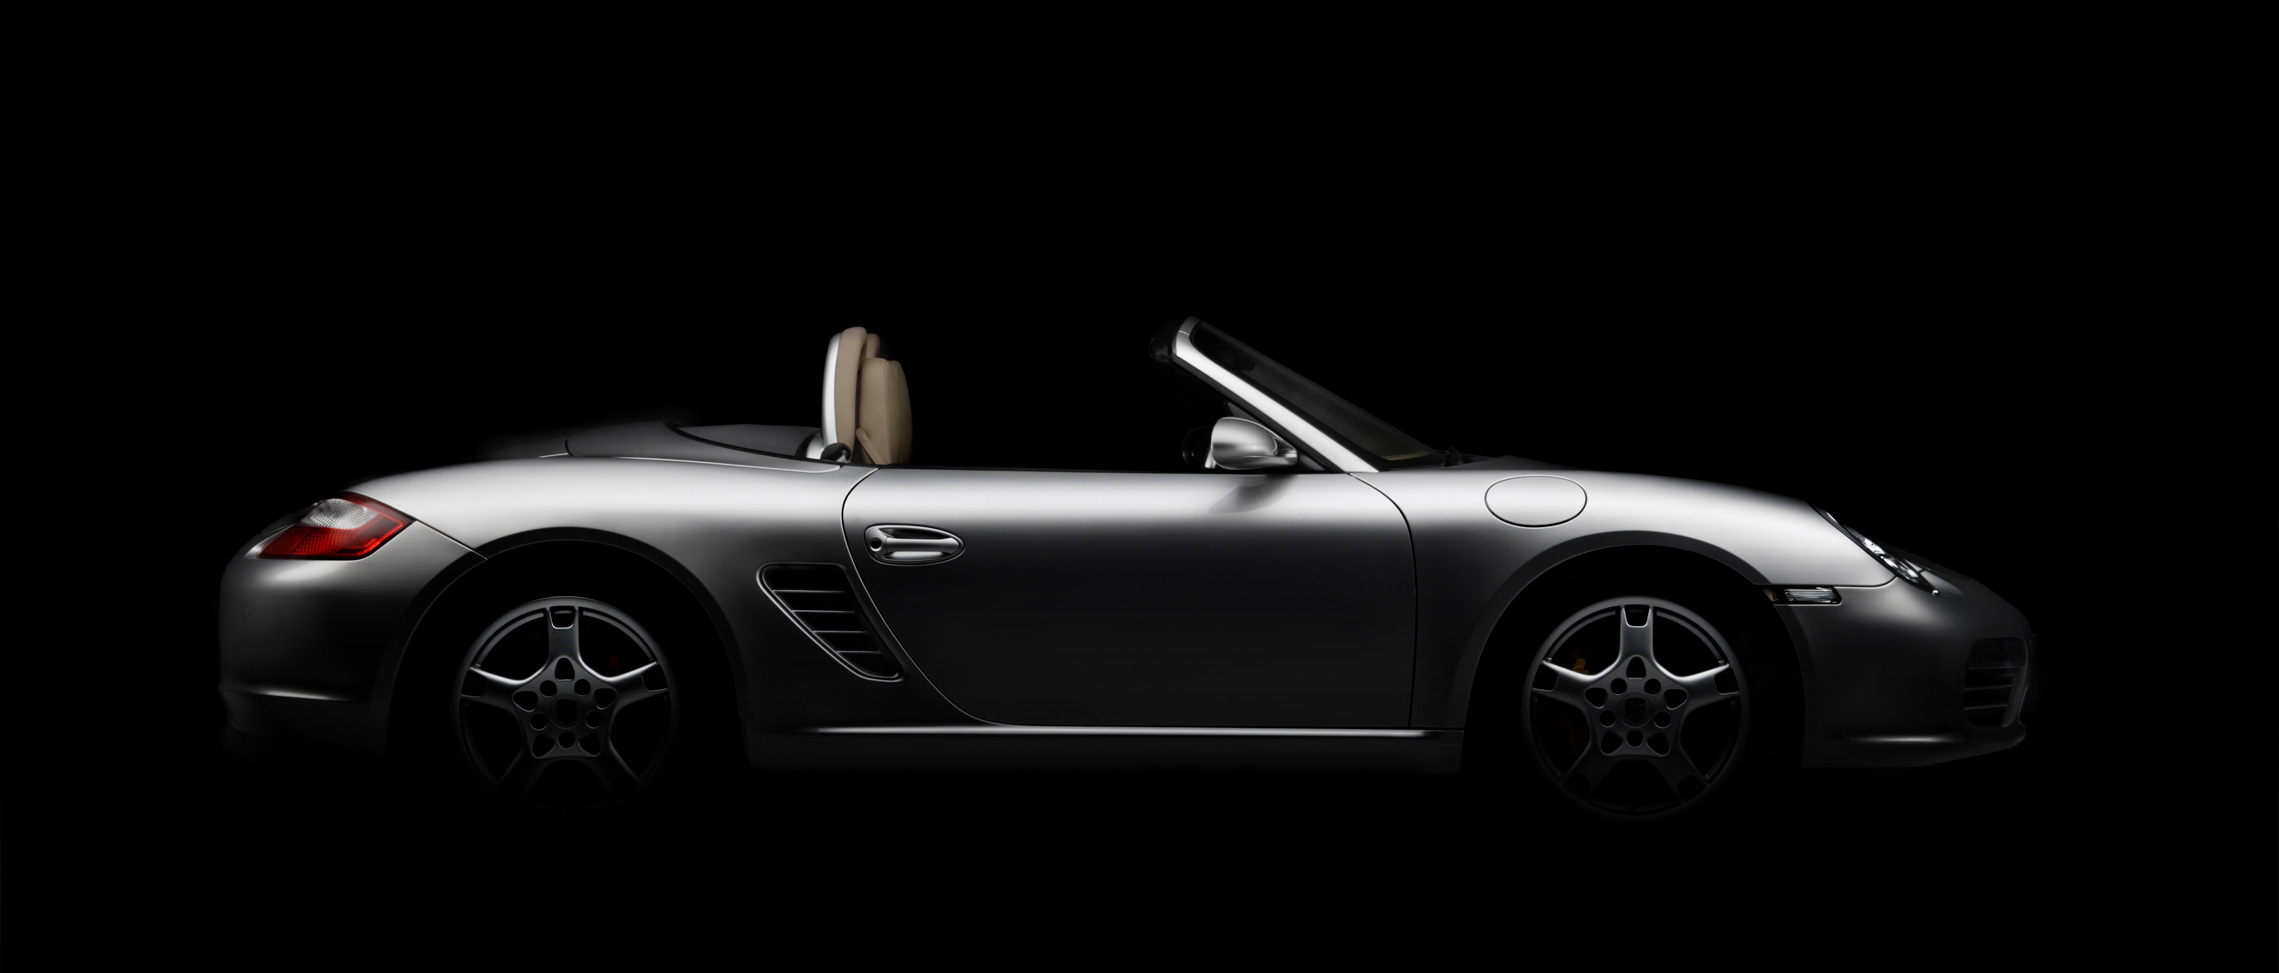 Boxster-01-03